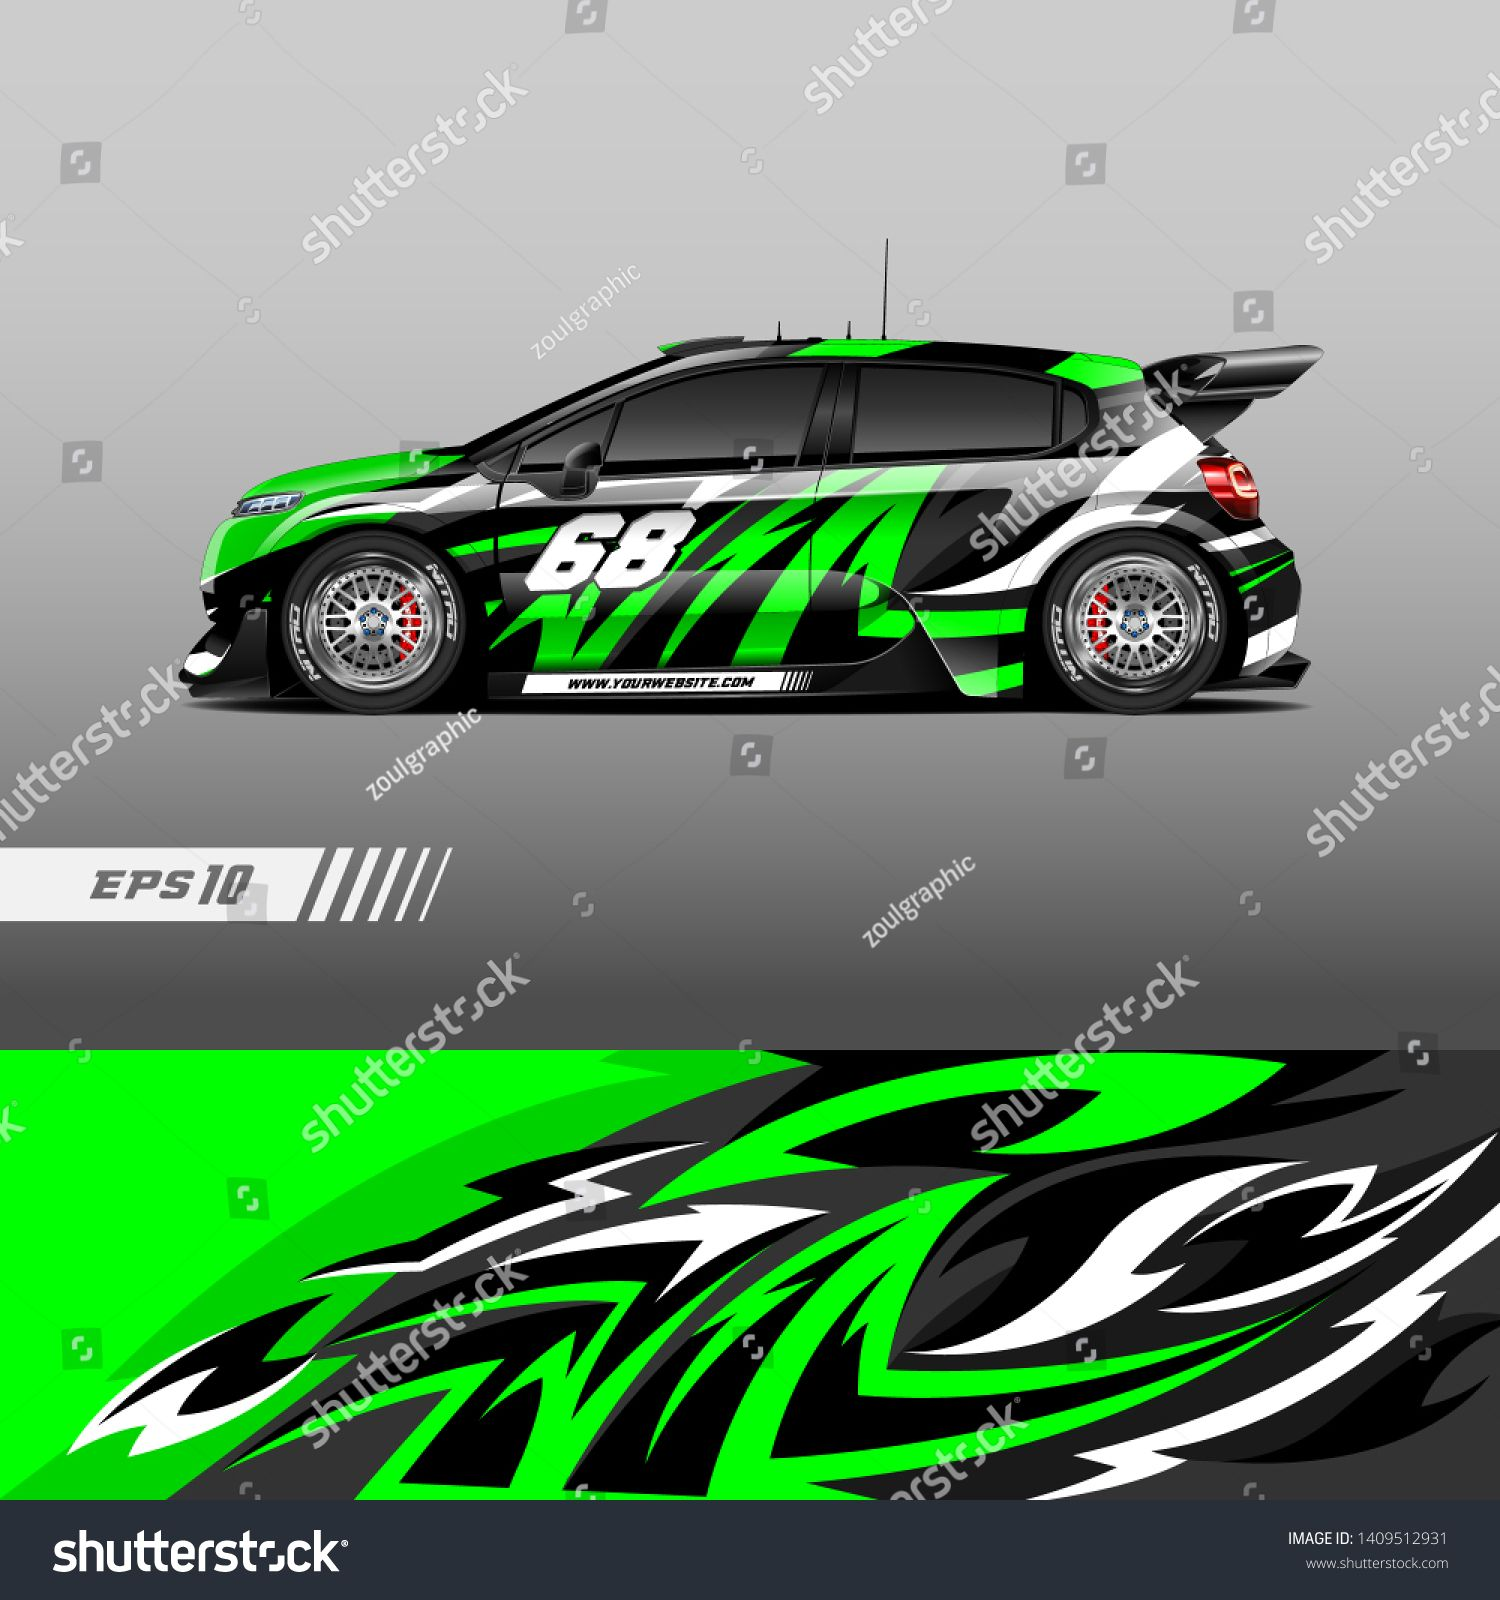 Car Decal Wrap Design Vector Graphic Abstract Stripe Racing Background Kit Designs For Wrap Vehicle Race Car Rally Adventure Car Decals Car Car Wrap Design [ 1600 x 1500 Pixel ]